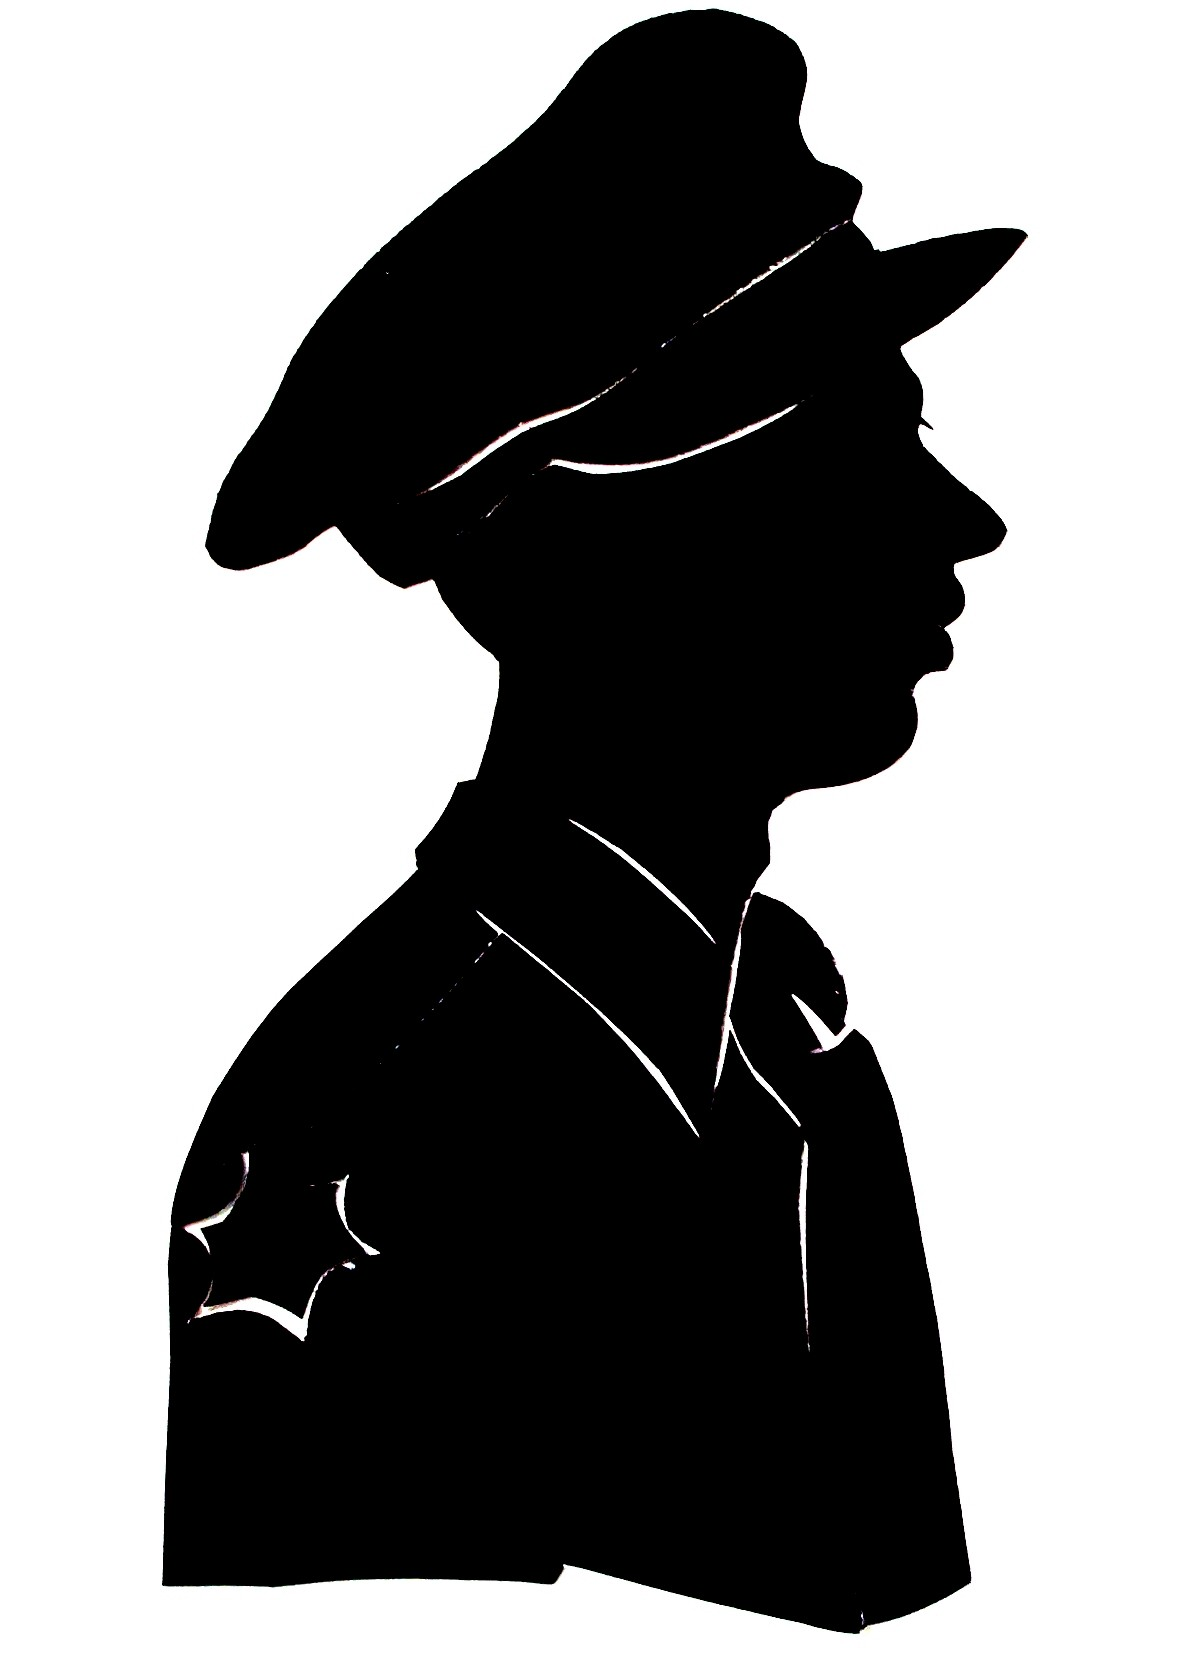 1197x1674 12 Famous People Silhouette Graphics Images